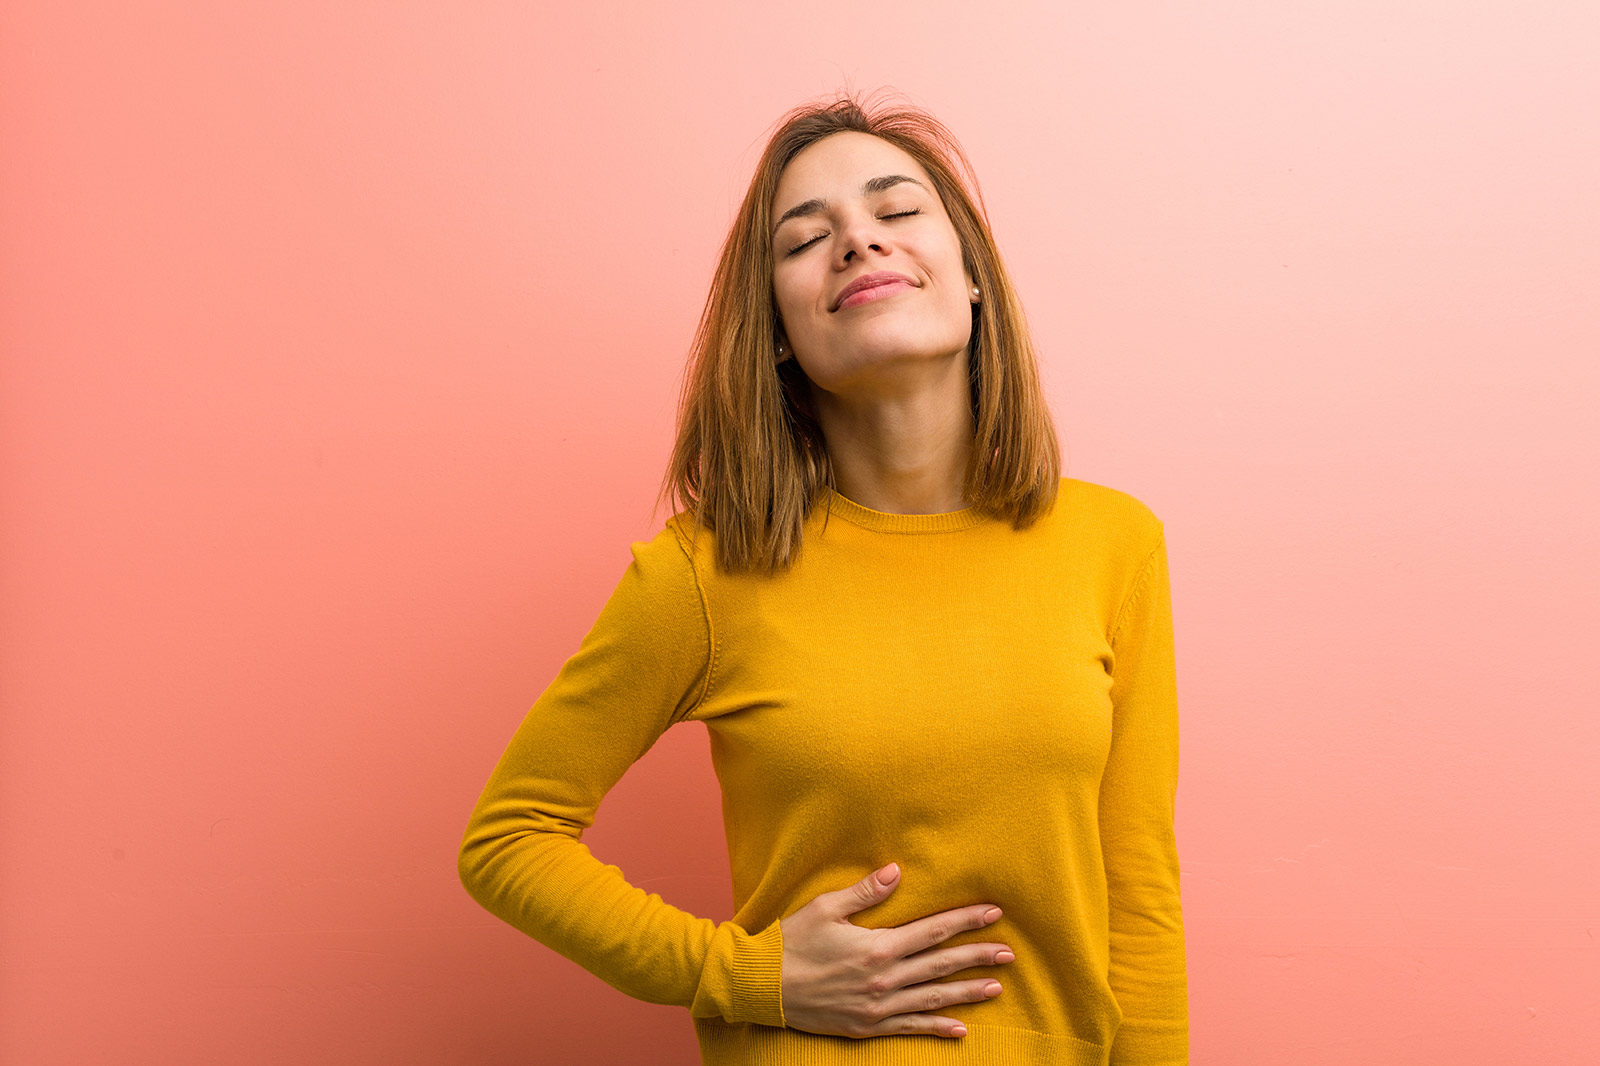 woman smiling with hand on stomach